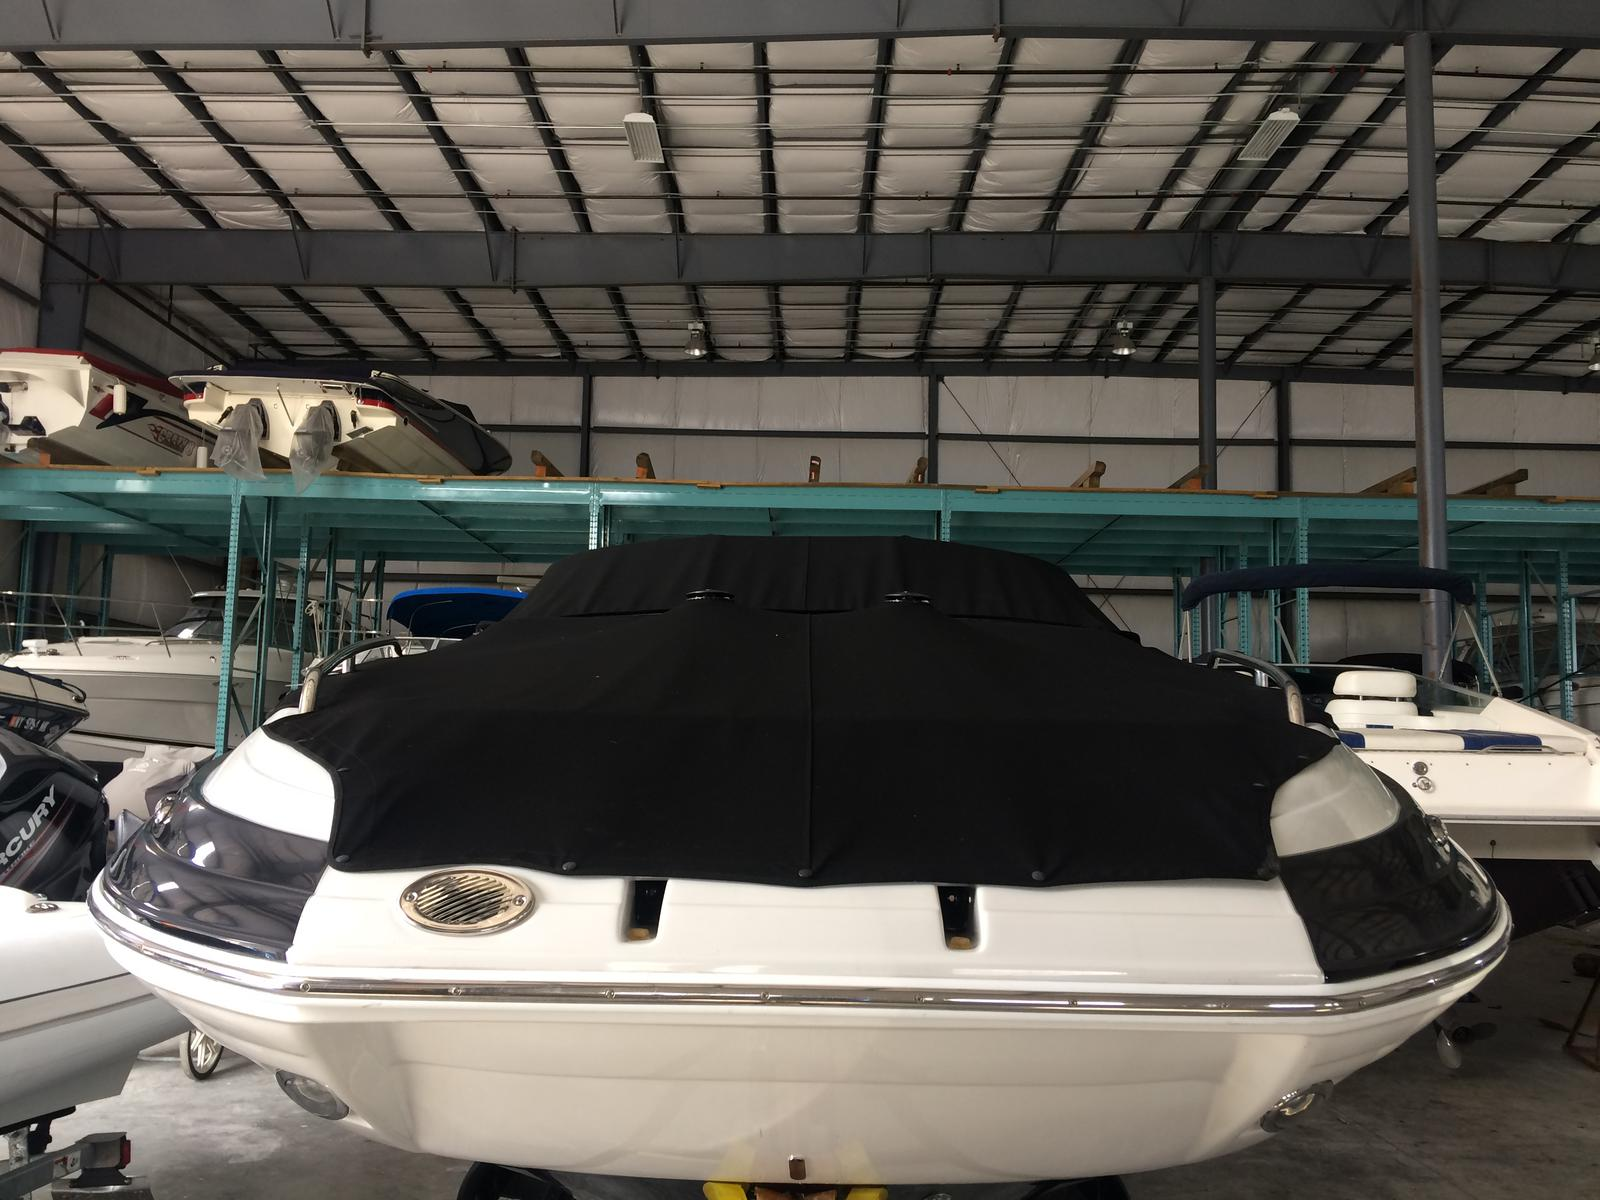 Used 2011 Crownline 265 E6 - Hutchinson's Boat Works